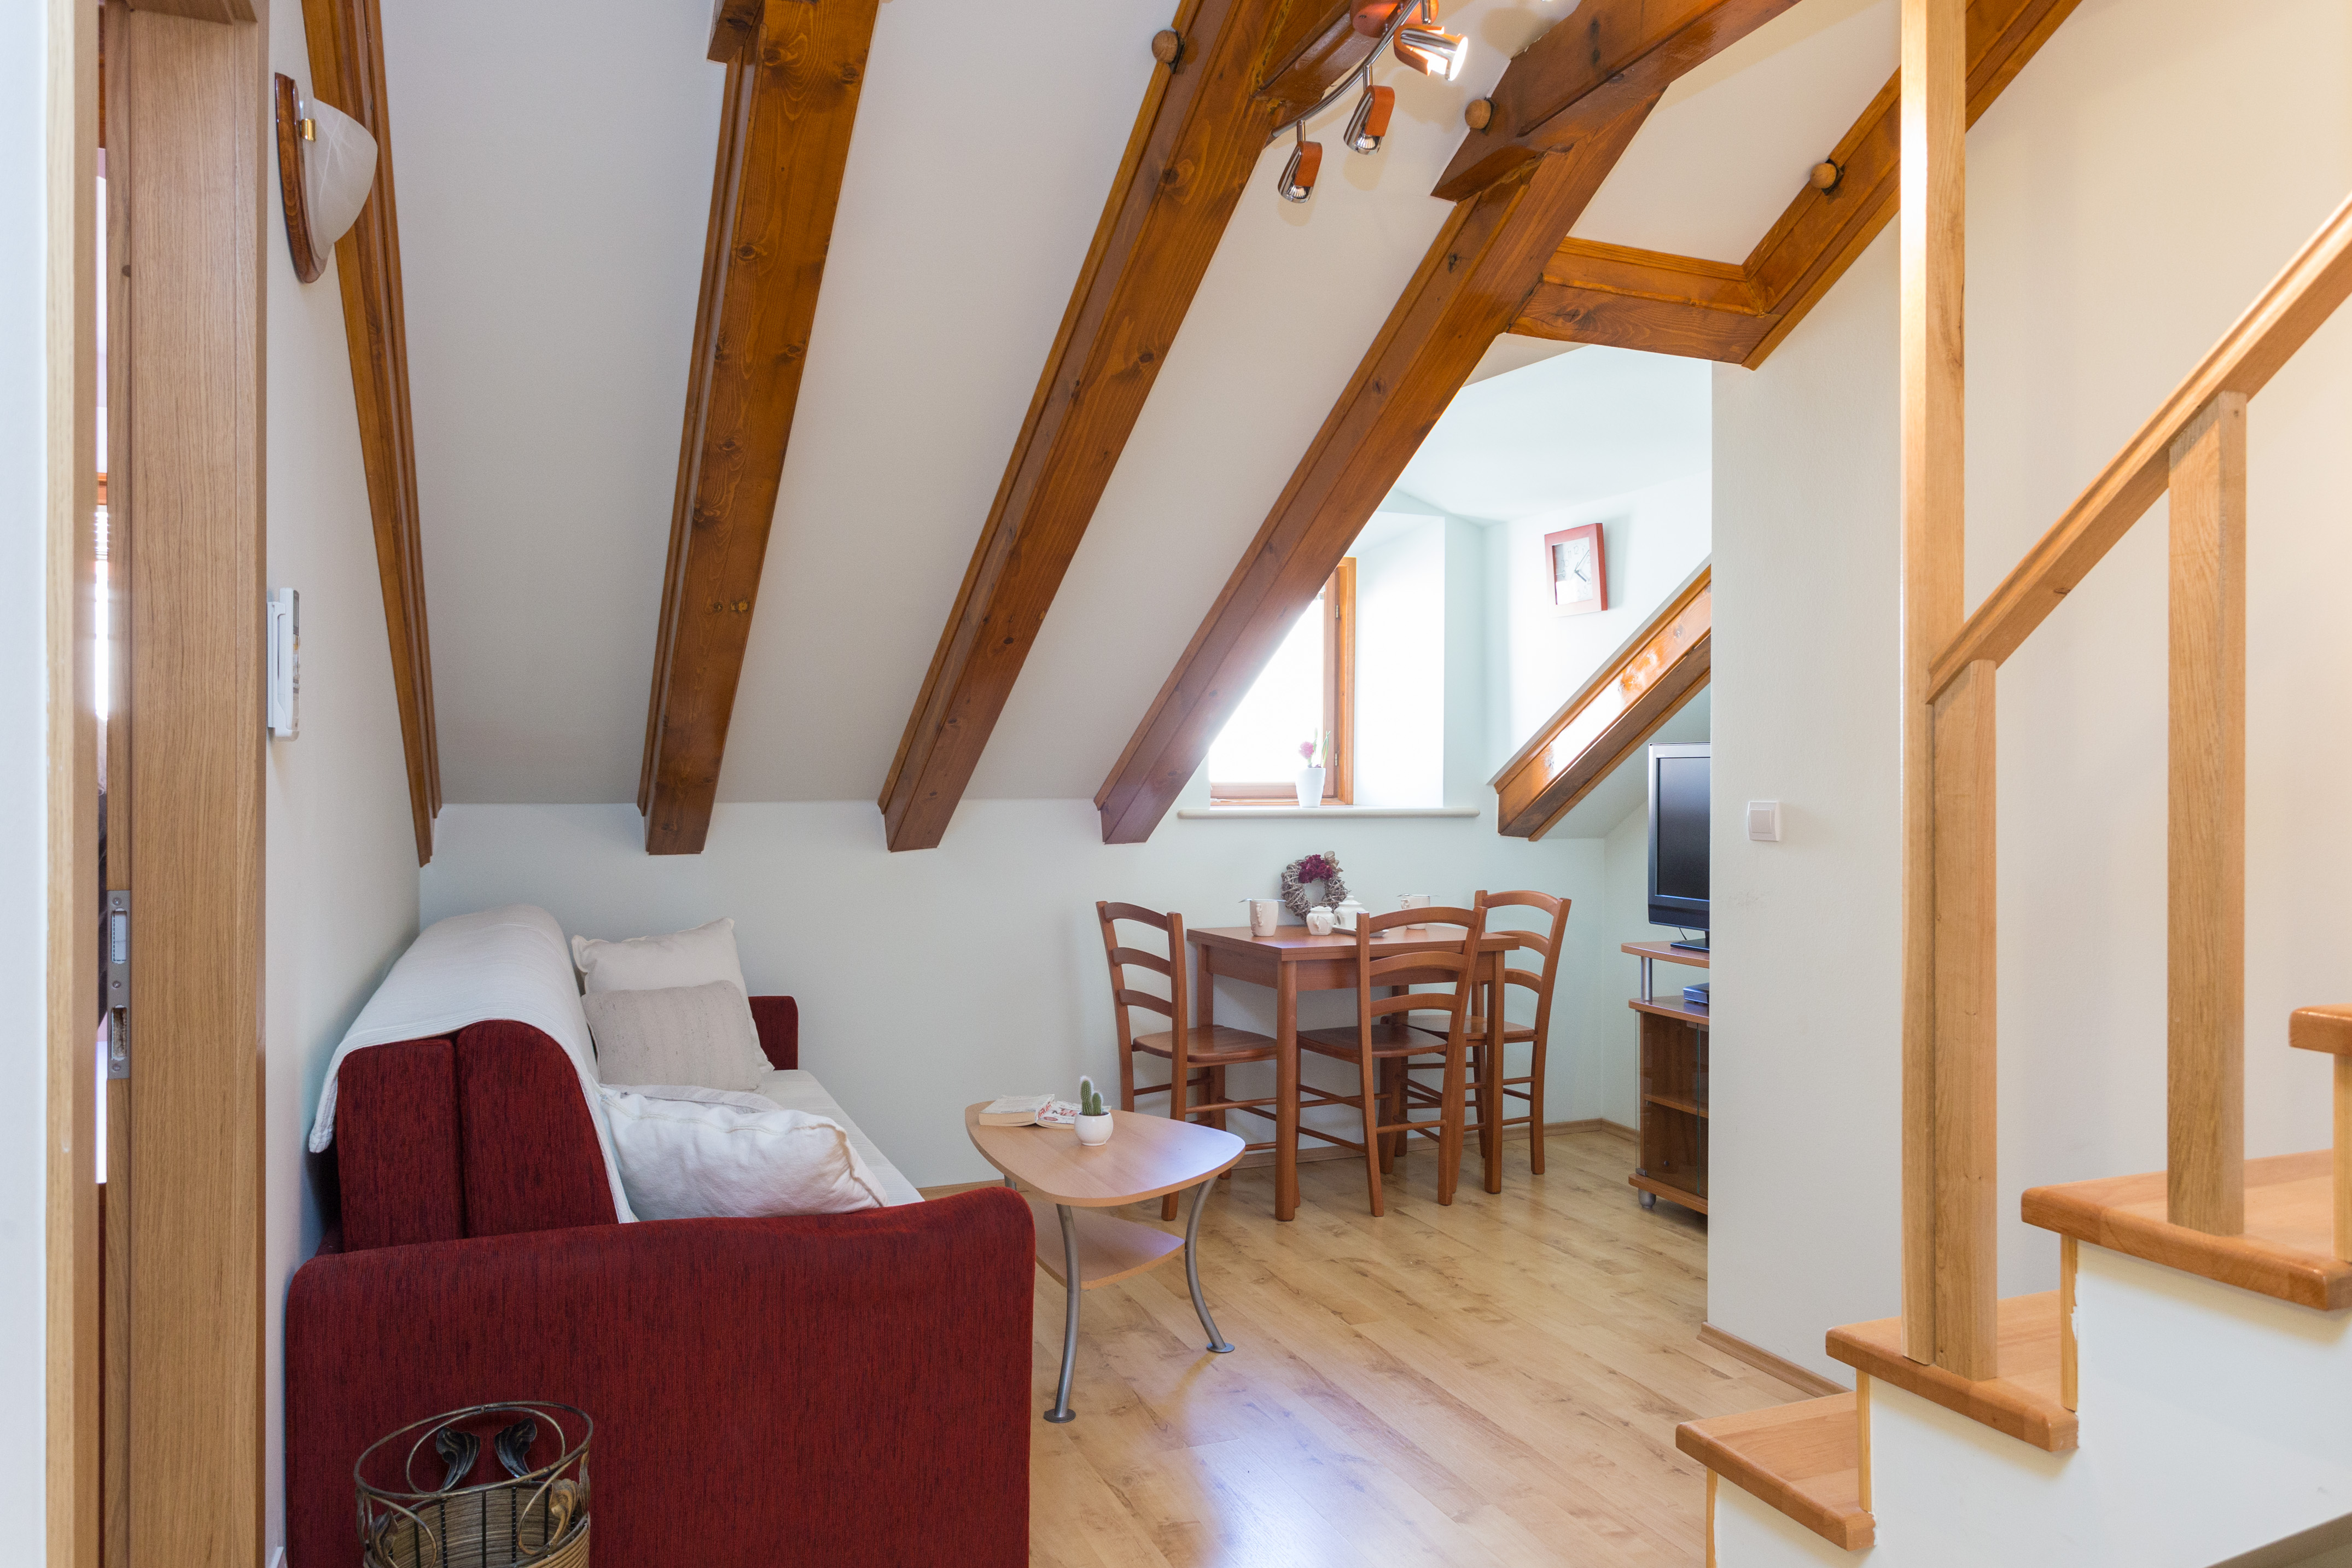 <p>Sleeps 2+1<br />1,5 bedroom<br />1 bathroom<br />living room, dining area, kitchen<br />Centre of the Old Town<br />Distance from beaches: 3-5 minutes walk</p>